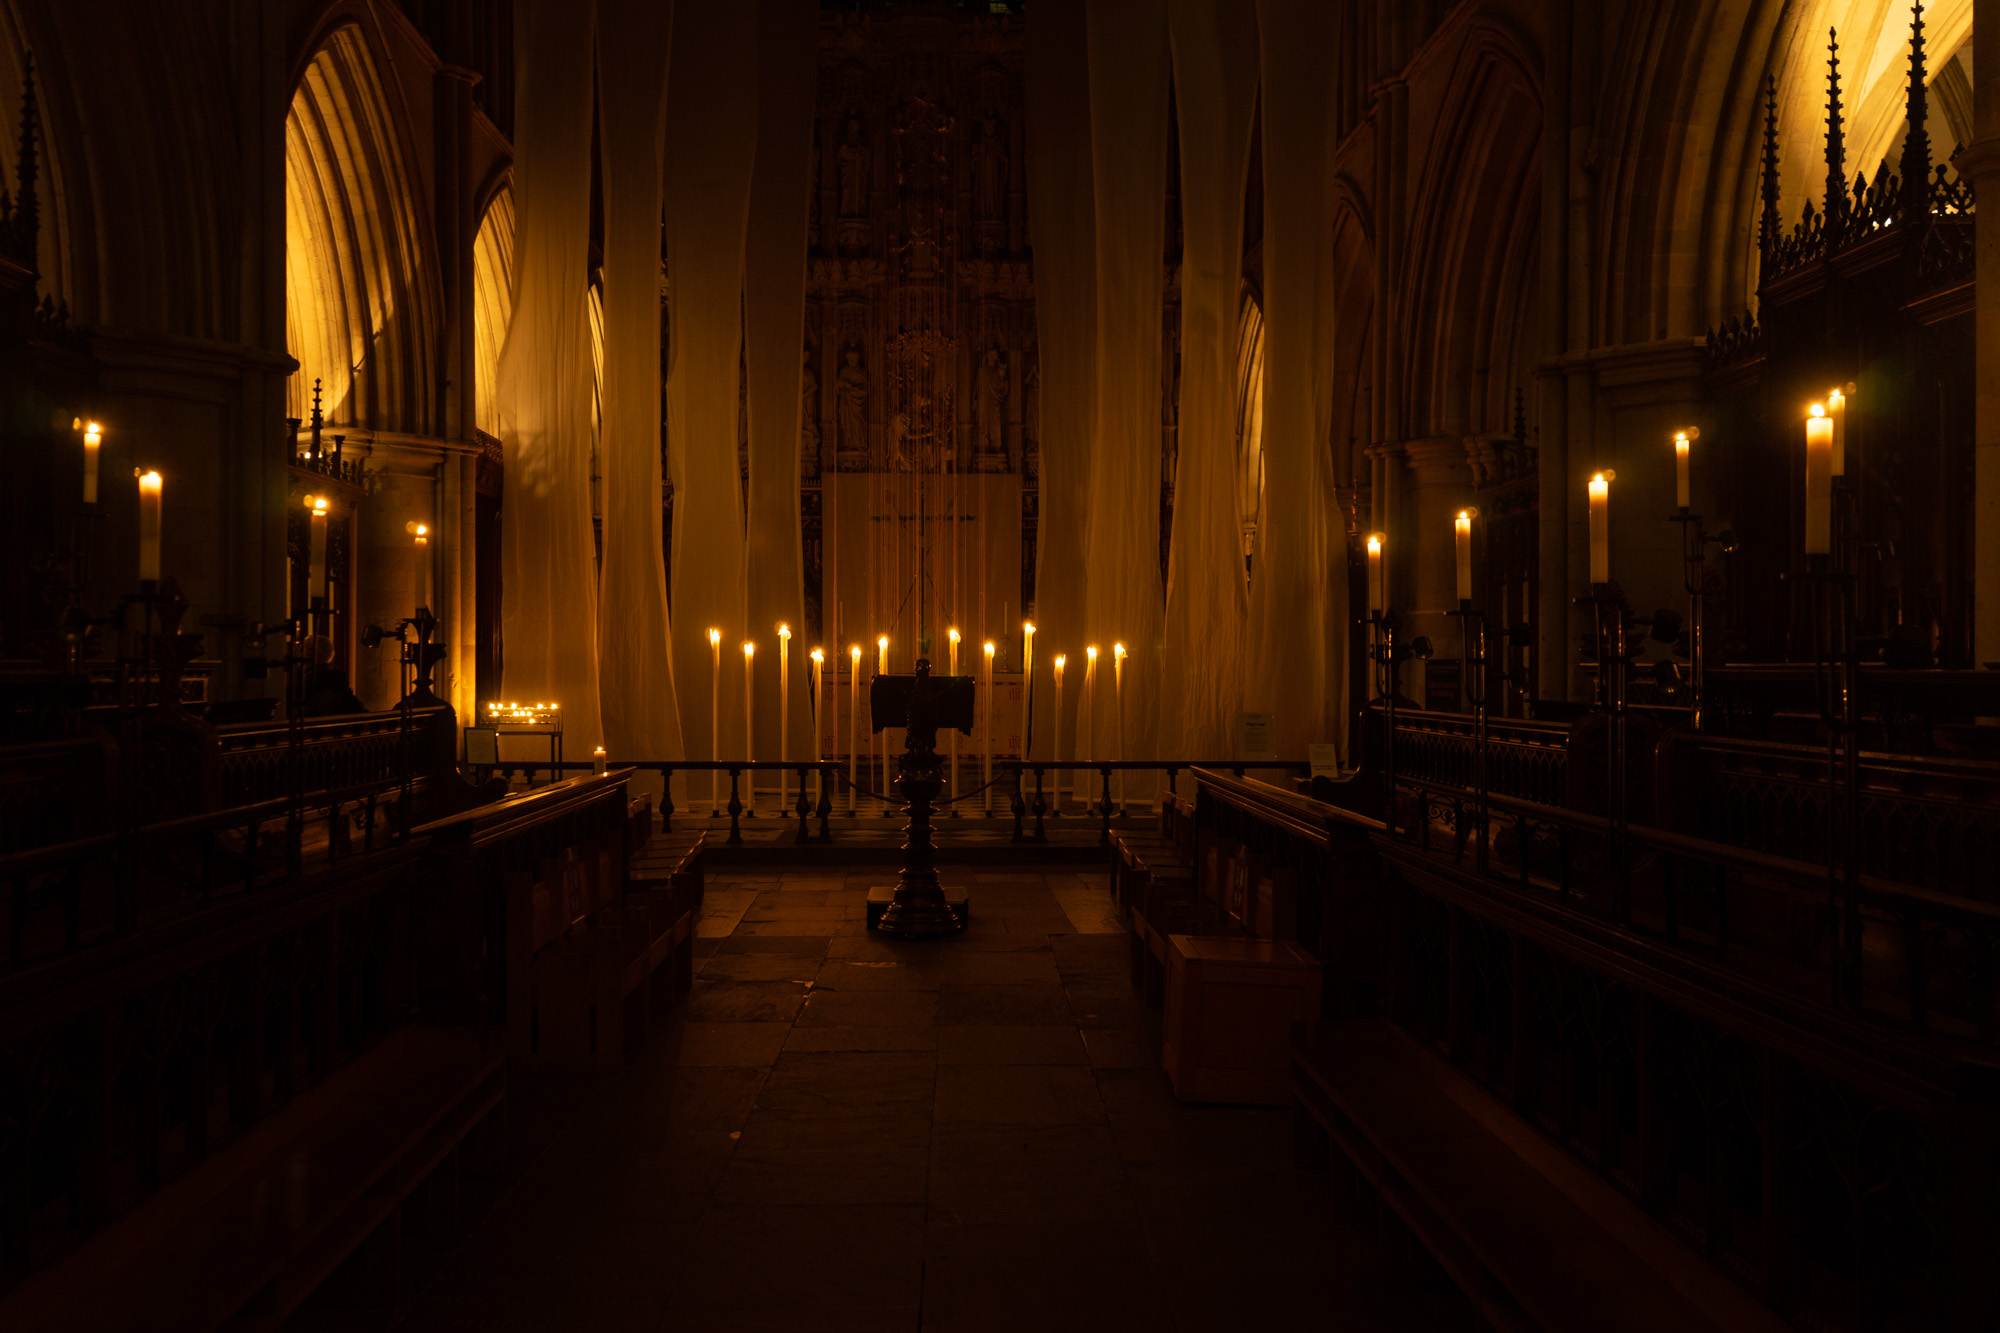 Lent Art Installation 2020 'Pilgrimage' by Michelle Rumney at Southwark Cathedral